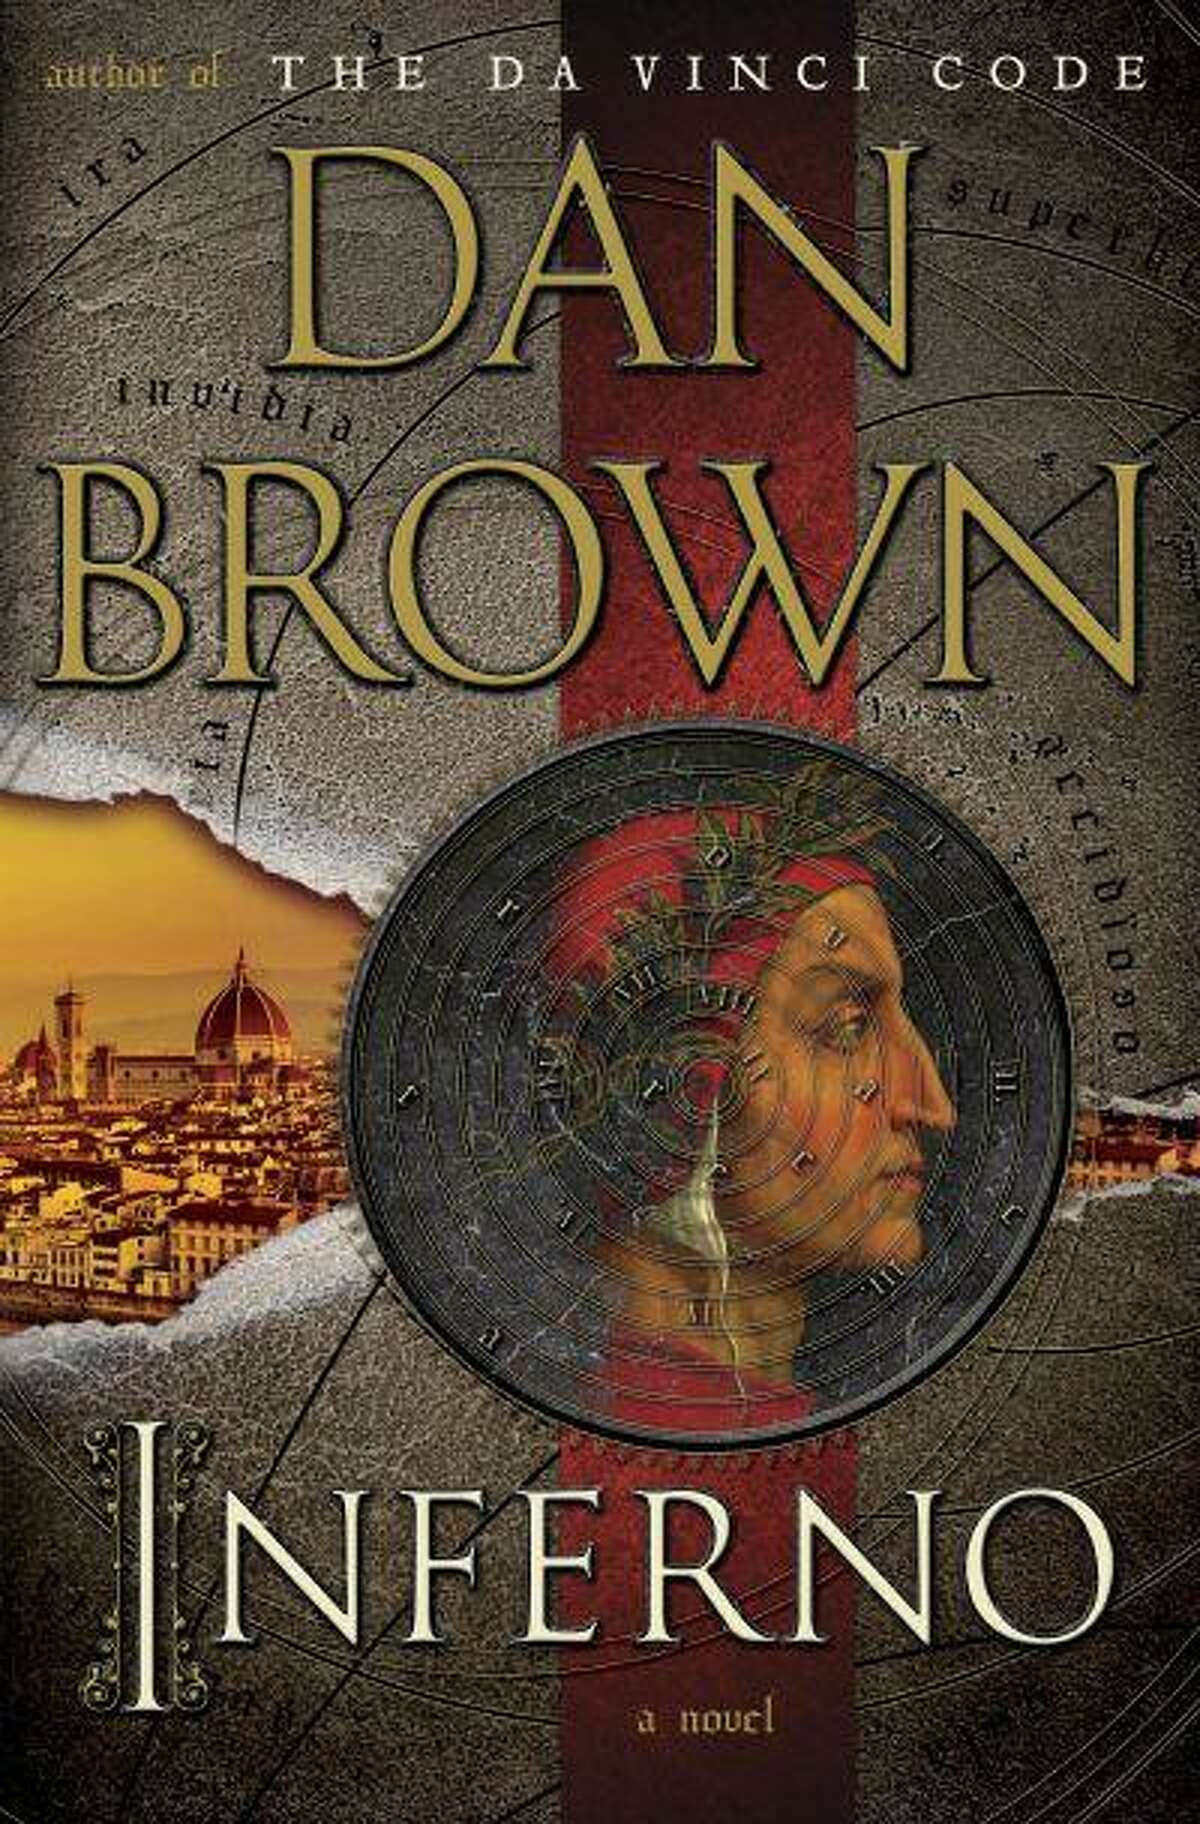 """This book cover image released by Doubleday shows """"Inferno,"""" by Dan Brown. The latest book by Brown, the author of """"The Davinci Code,"""" will be released on May 14, 2013. (AP Photo/Doubleday)"""